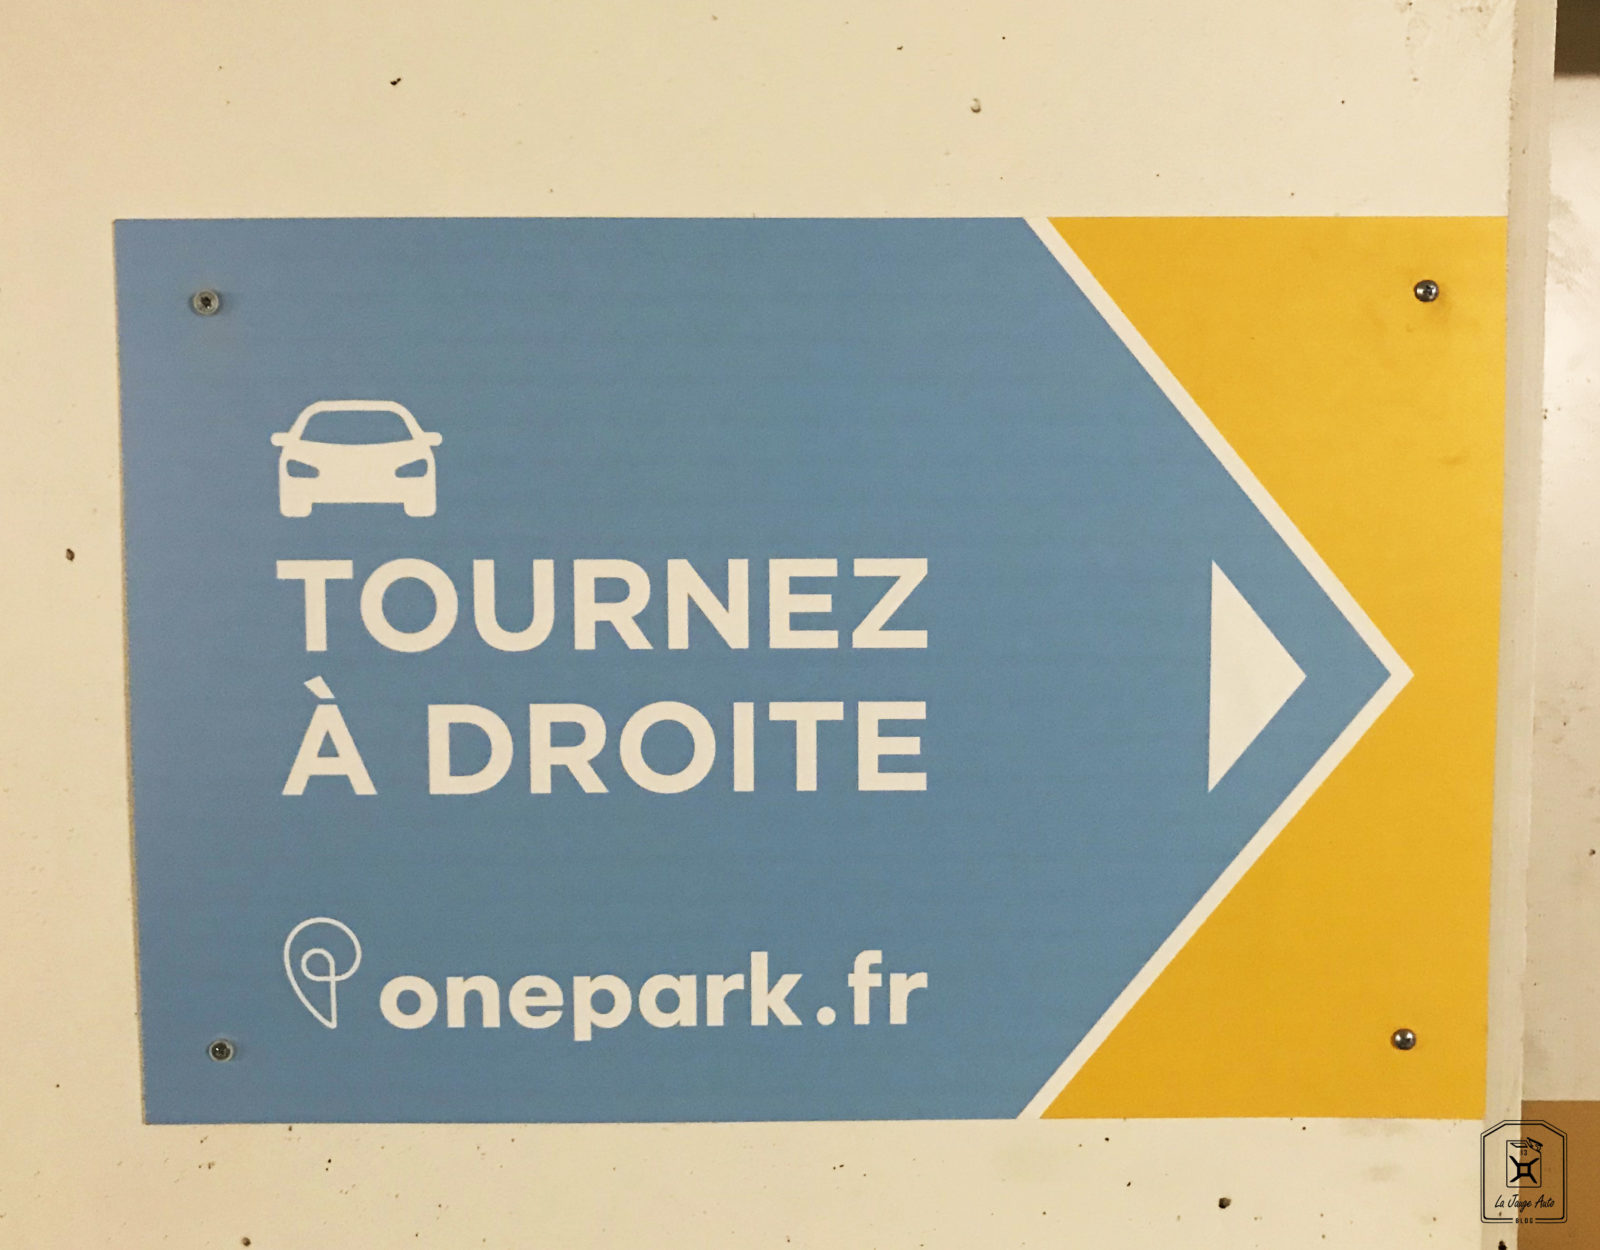 Service - Onepark - Parking - Parkings - France - Europe - Réservation - Application - La Jauge Auto - lajaugeauto - La Jauge Auto - Blog automobile & lifestyle